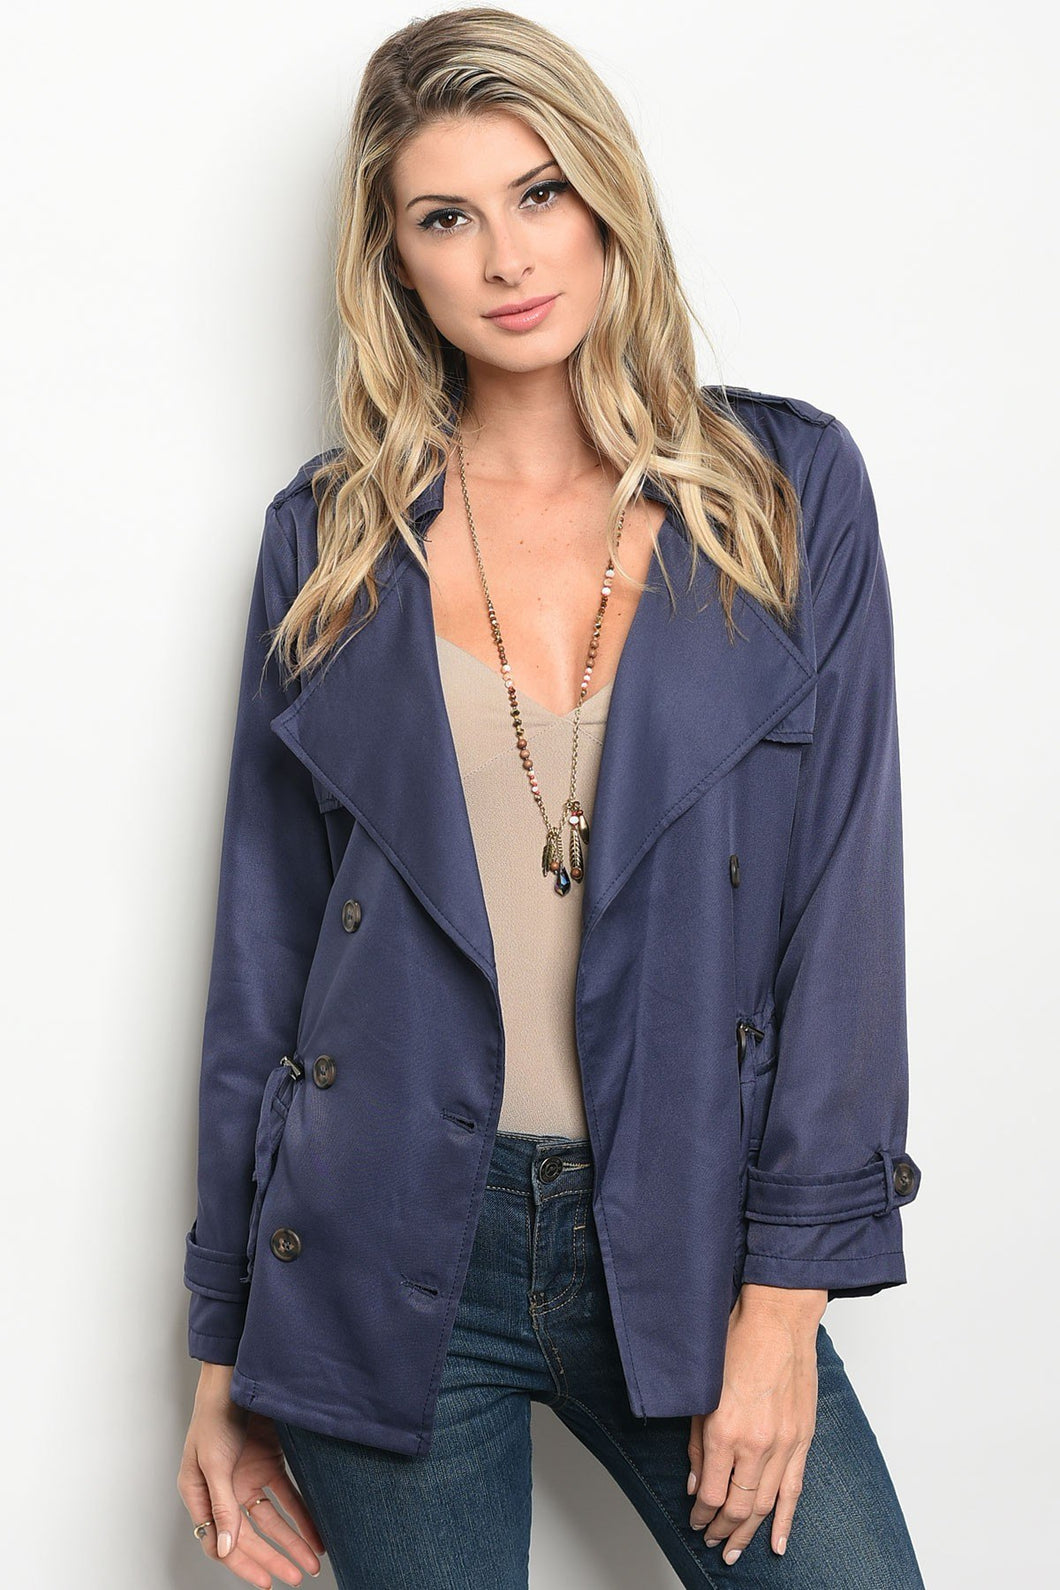 Ladies fashion long sleeve double breasted button up jacket with a collard neckline